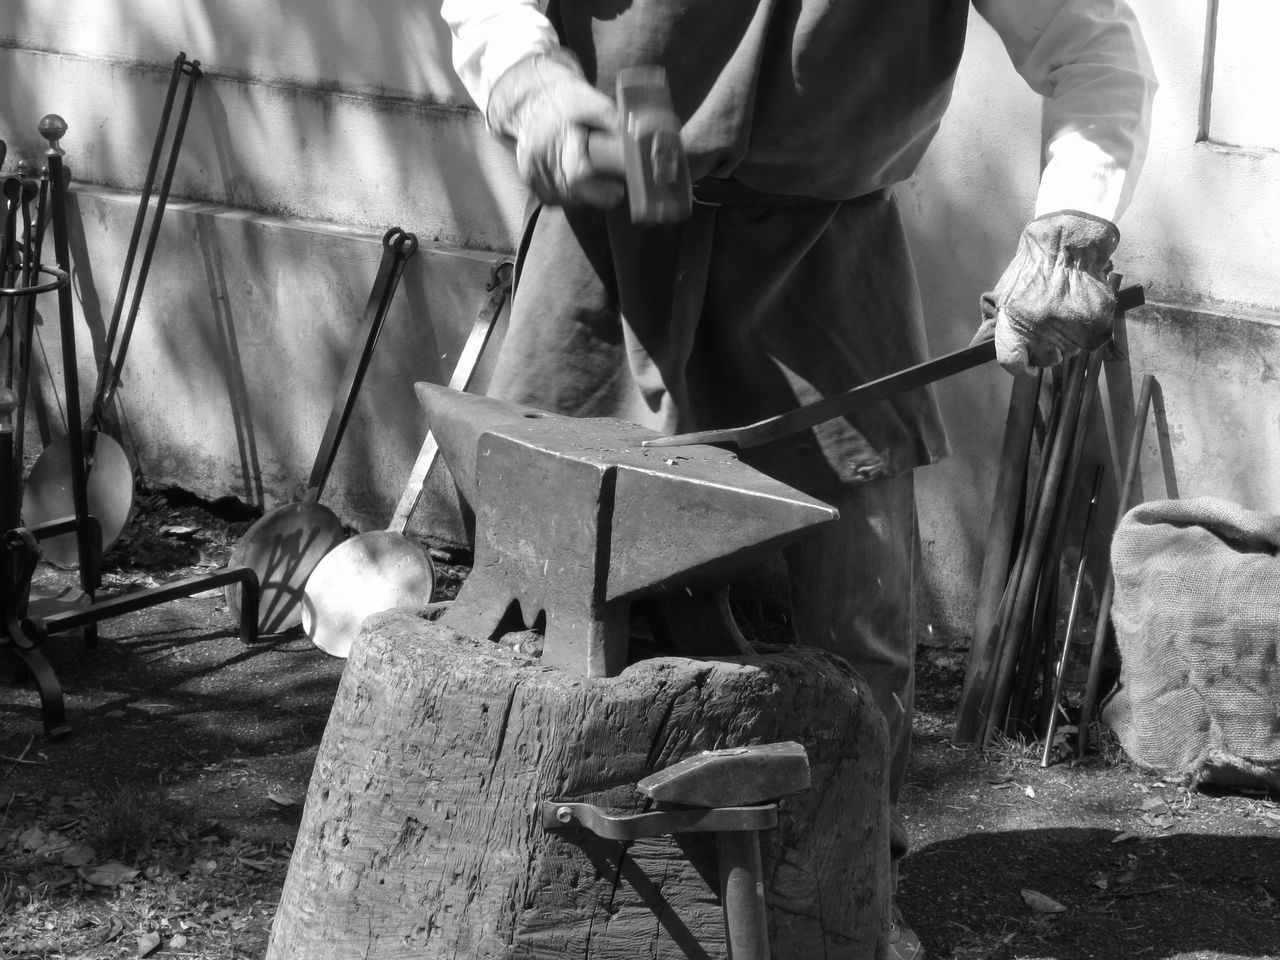 Blacksmith manually forging the molten metal with hammer on the anvil . Black and white photo . Photo taken during outdoor public event (no ticket required) in public place . Pistoia, Italy Anvil Black And White Blacksmith  Craft Craftsman Farrier Forge  Forging Glowing Hammer Hand Handmade Heavy Hot Incandescent Iron Ironwork  Manual Worker Metal Molten Rod Smith Spark Traditional Working